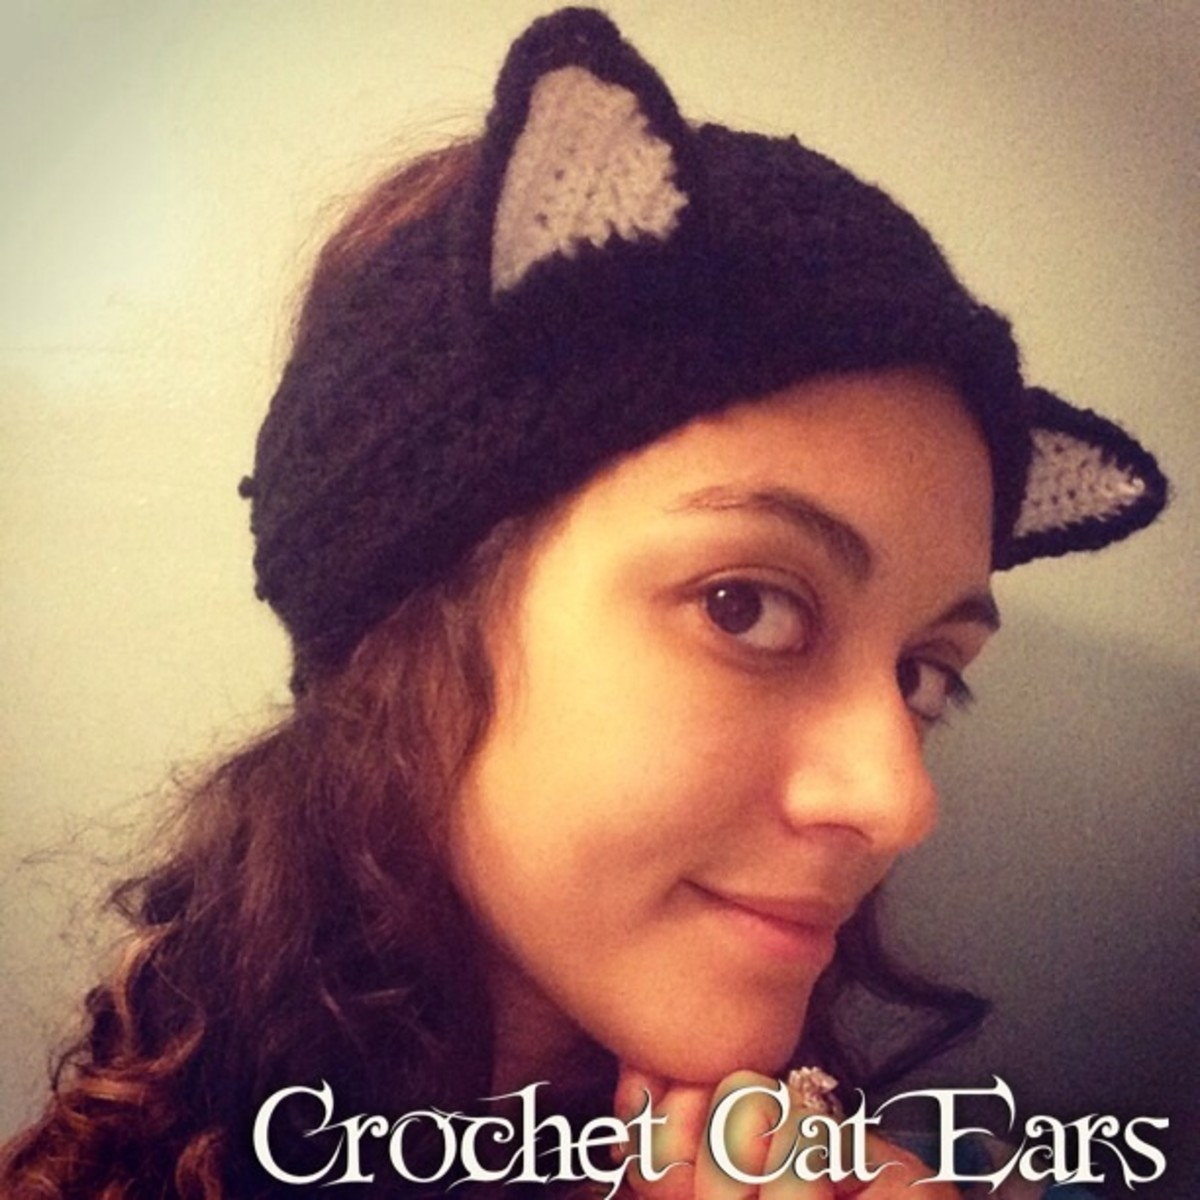 Crochet Cat Ears Pattern